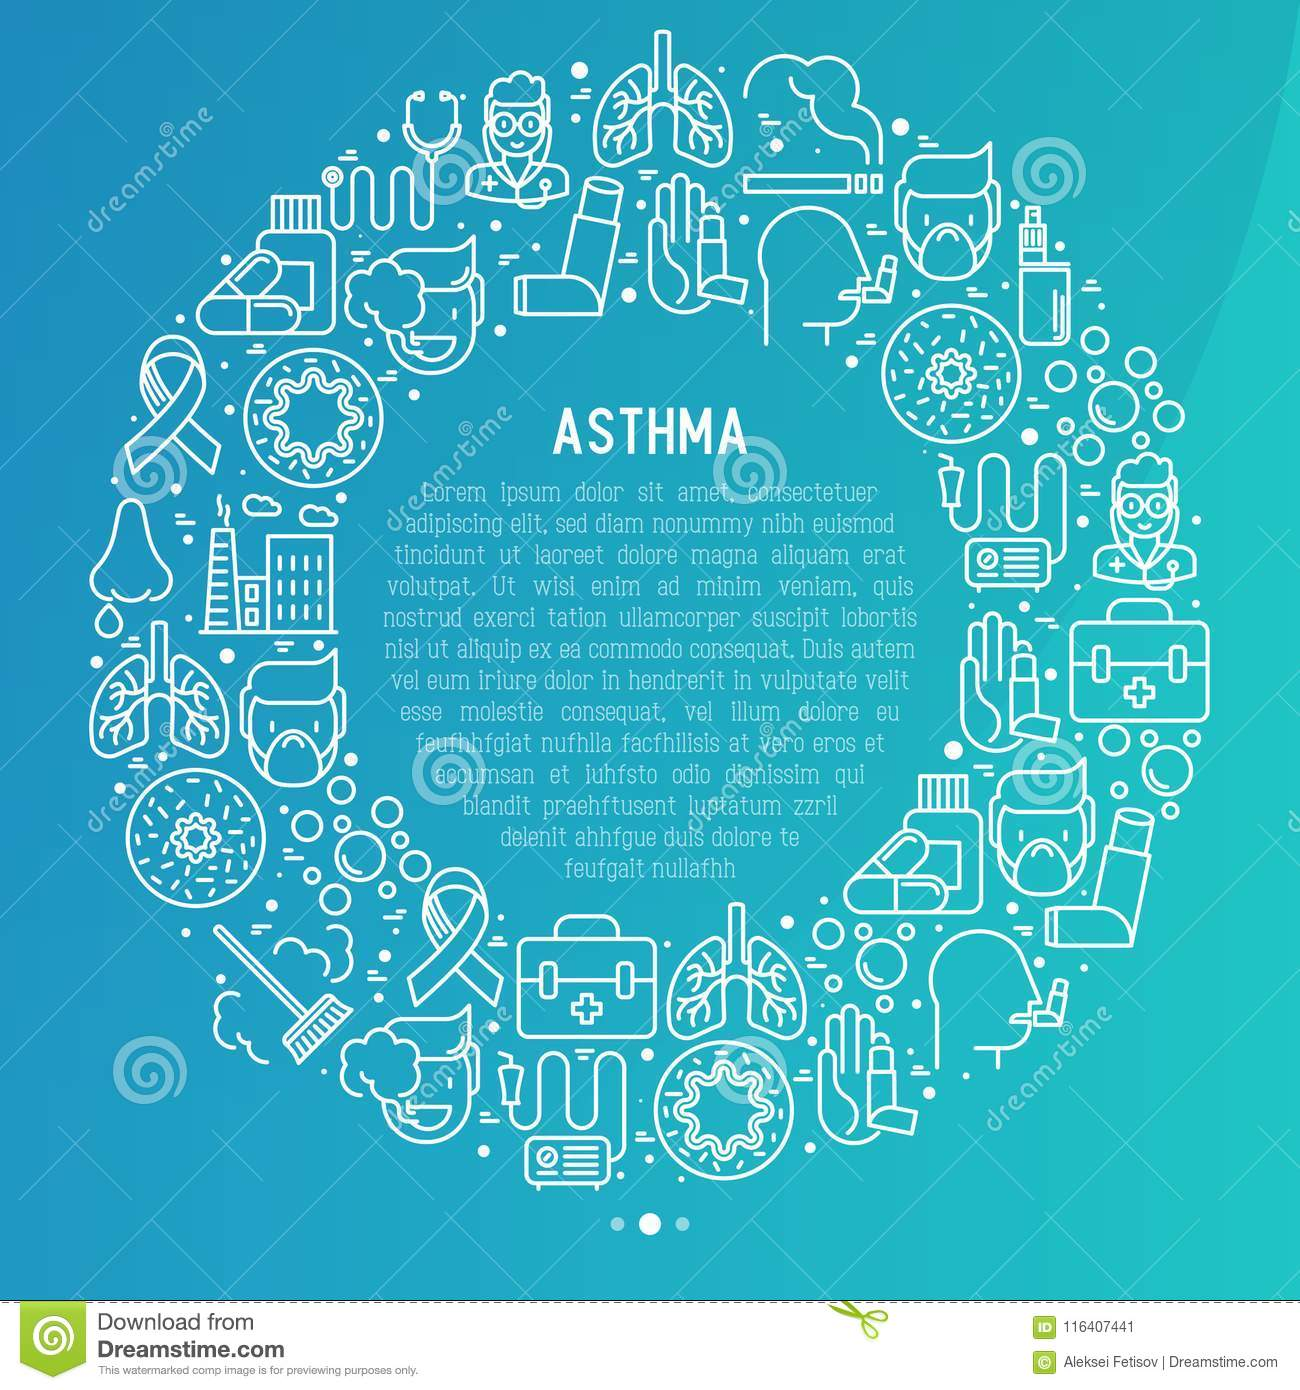 World asthma day concept in circle